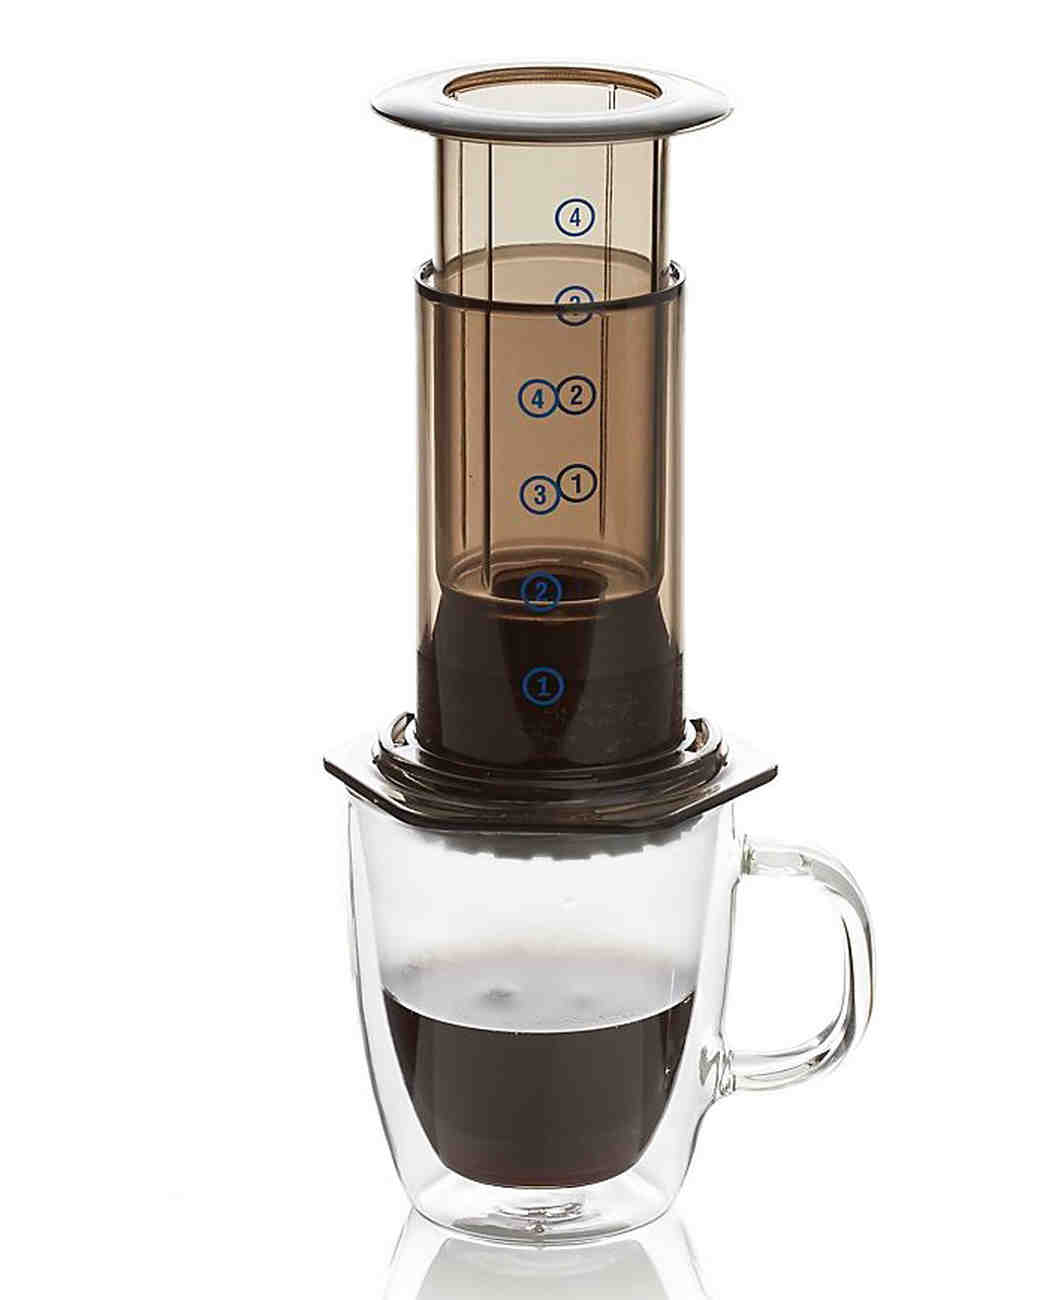 Aeropress Coffee Maker Manufacturer : 22 Wedding Gift Ideas for Coffee Lovers Martha Stewart Weddings